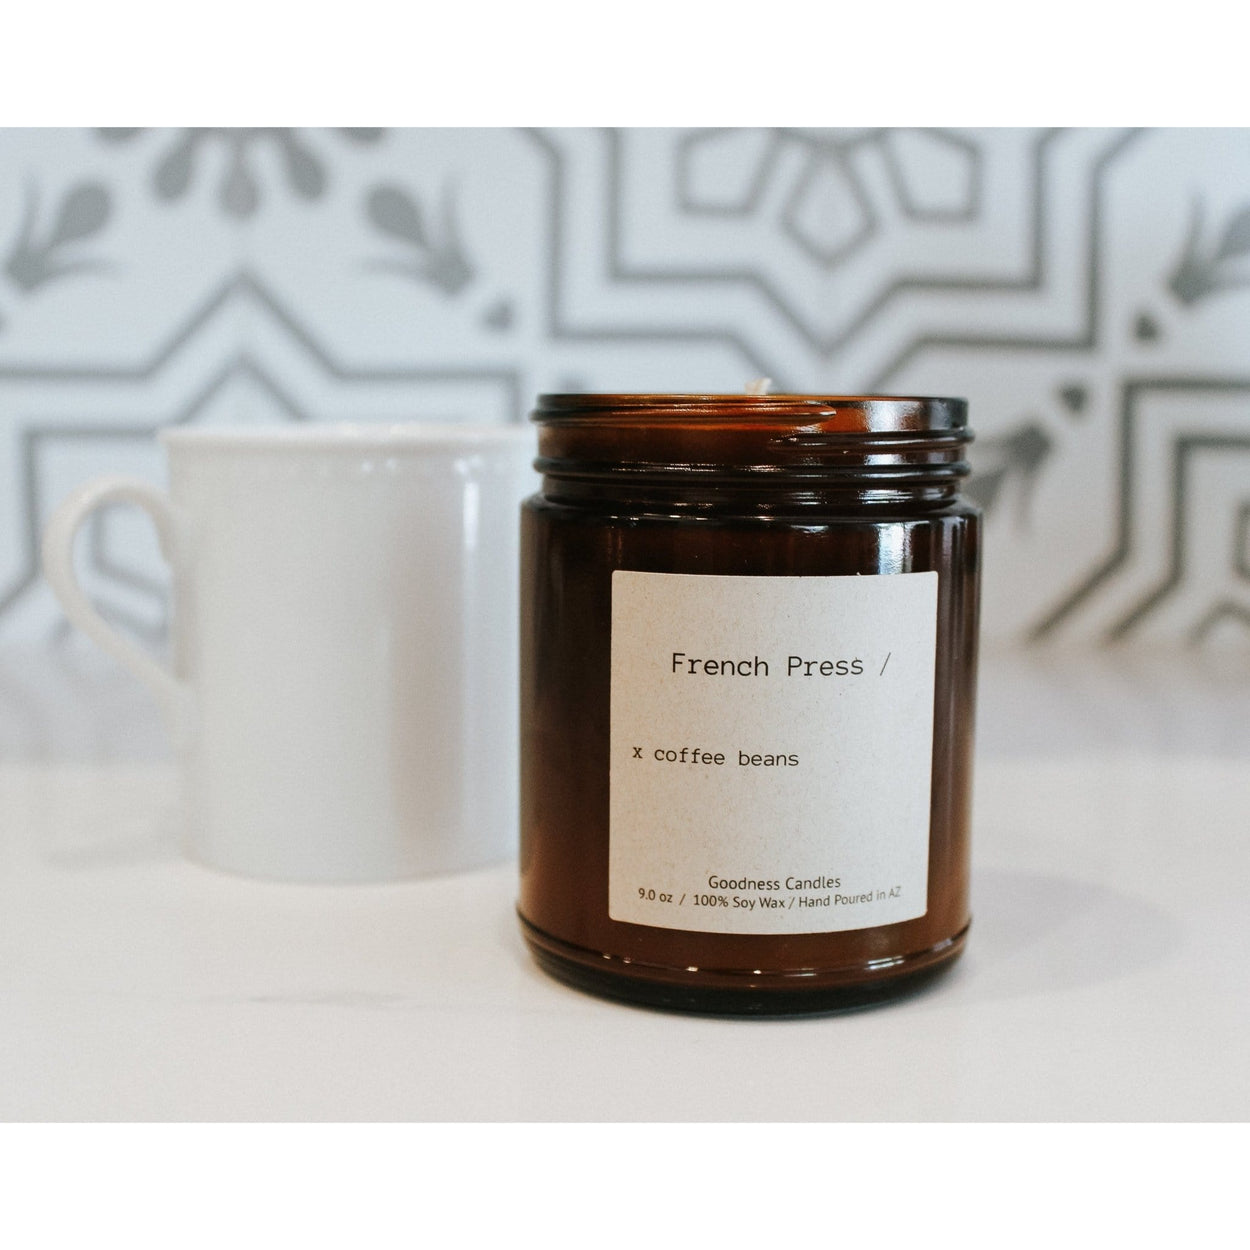 French Press Goodness Candles